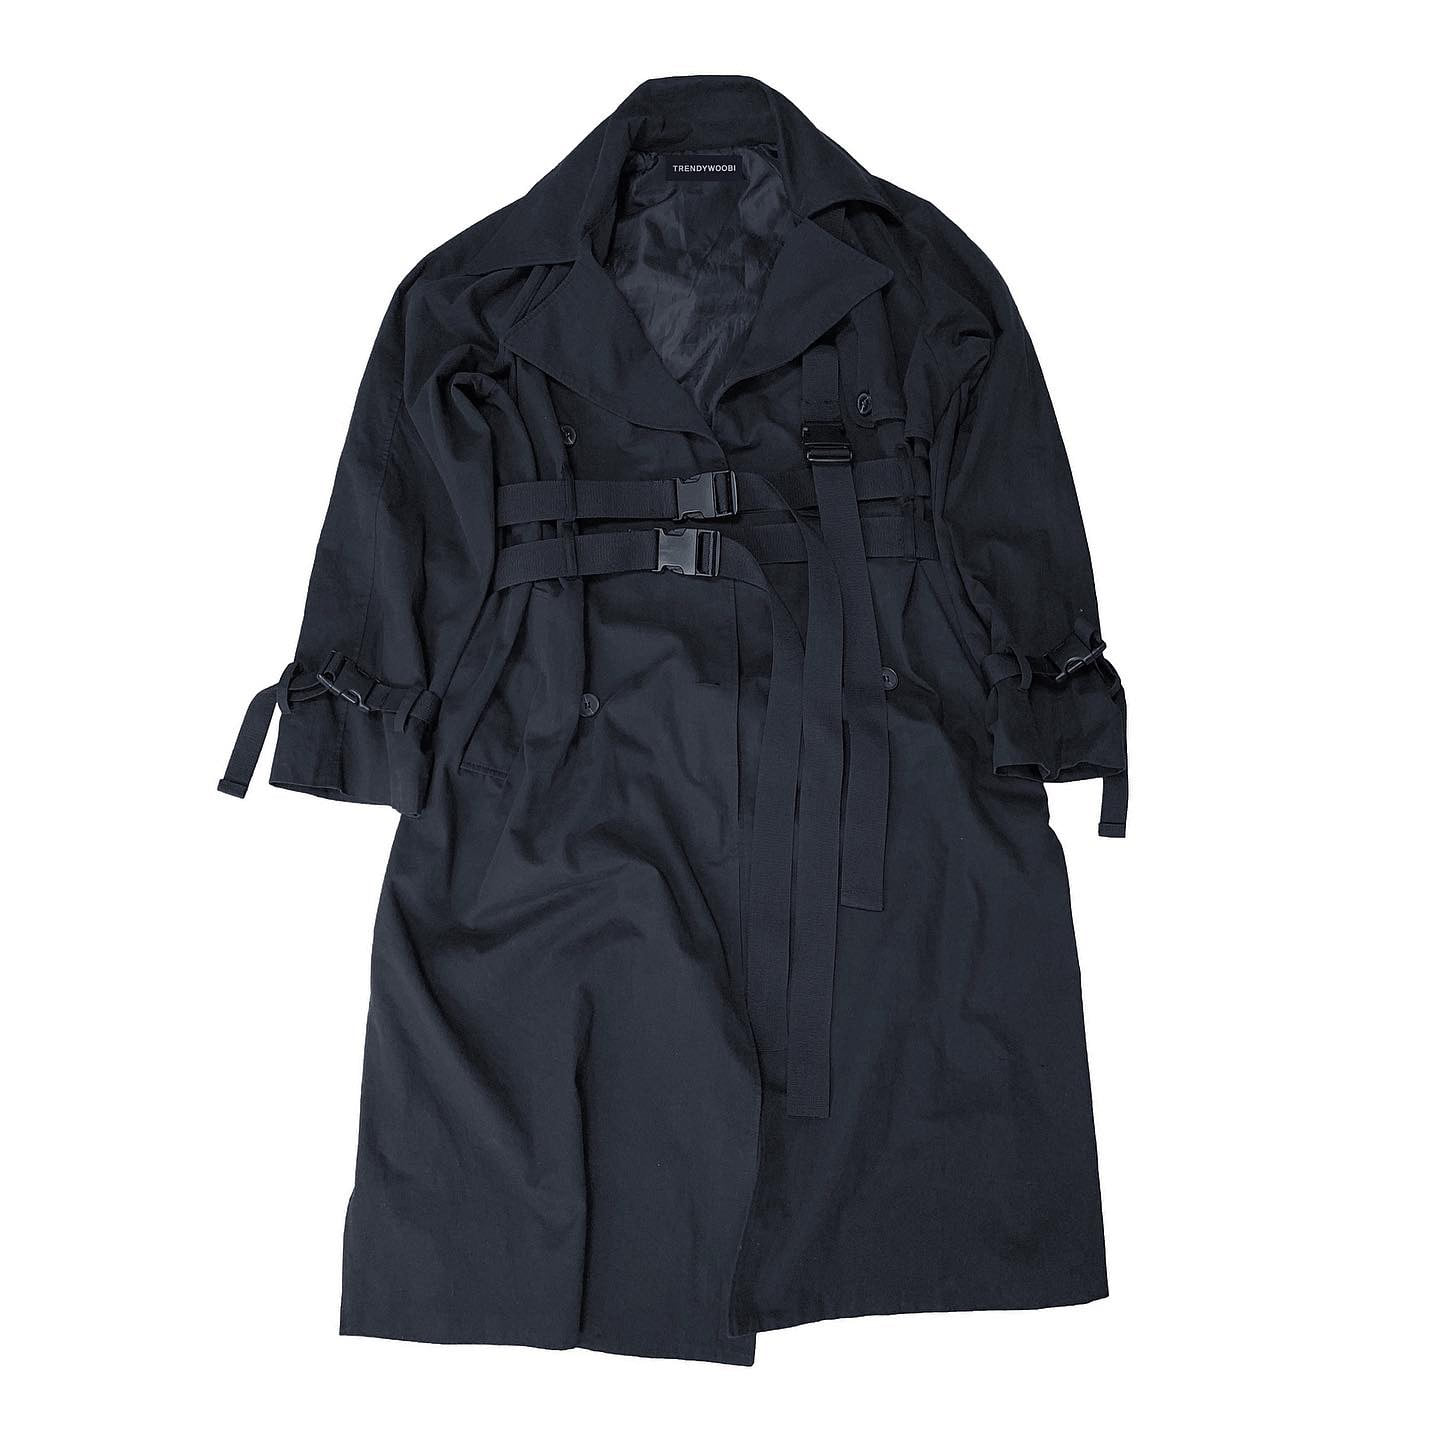 Black 3rope strap trenchcoat